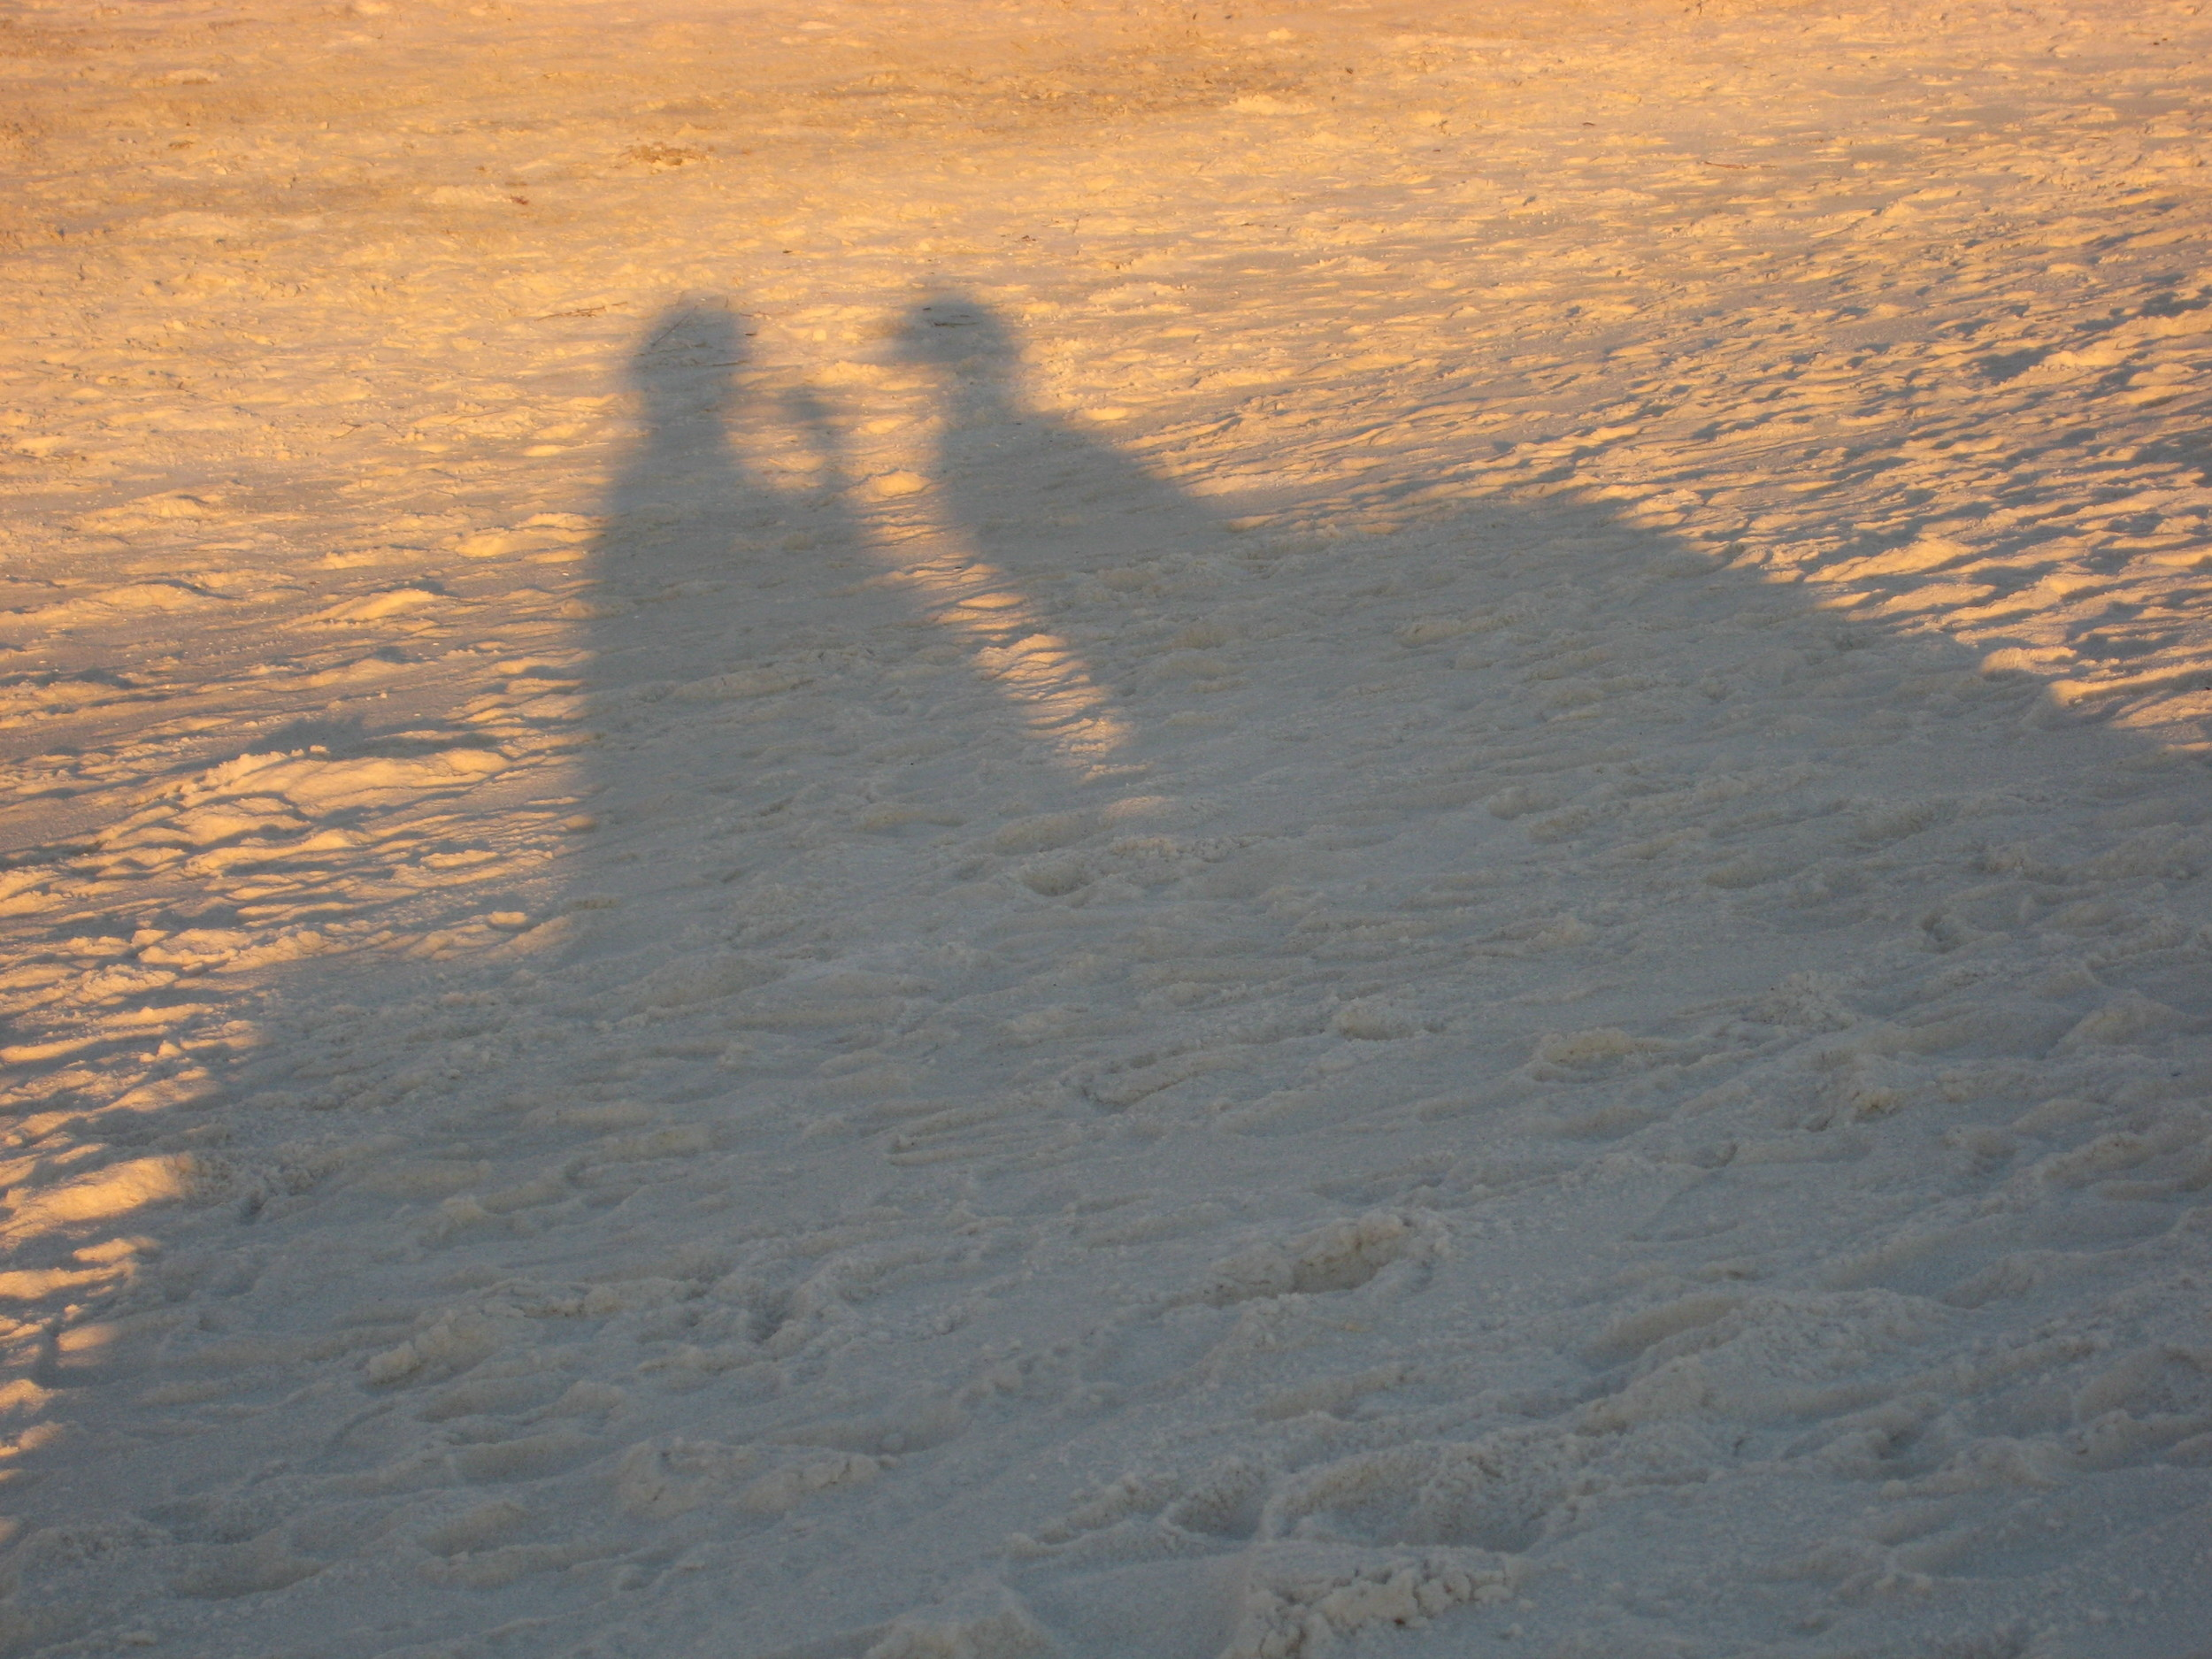 our shadows in the sand